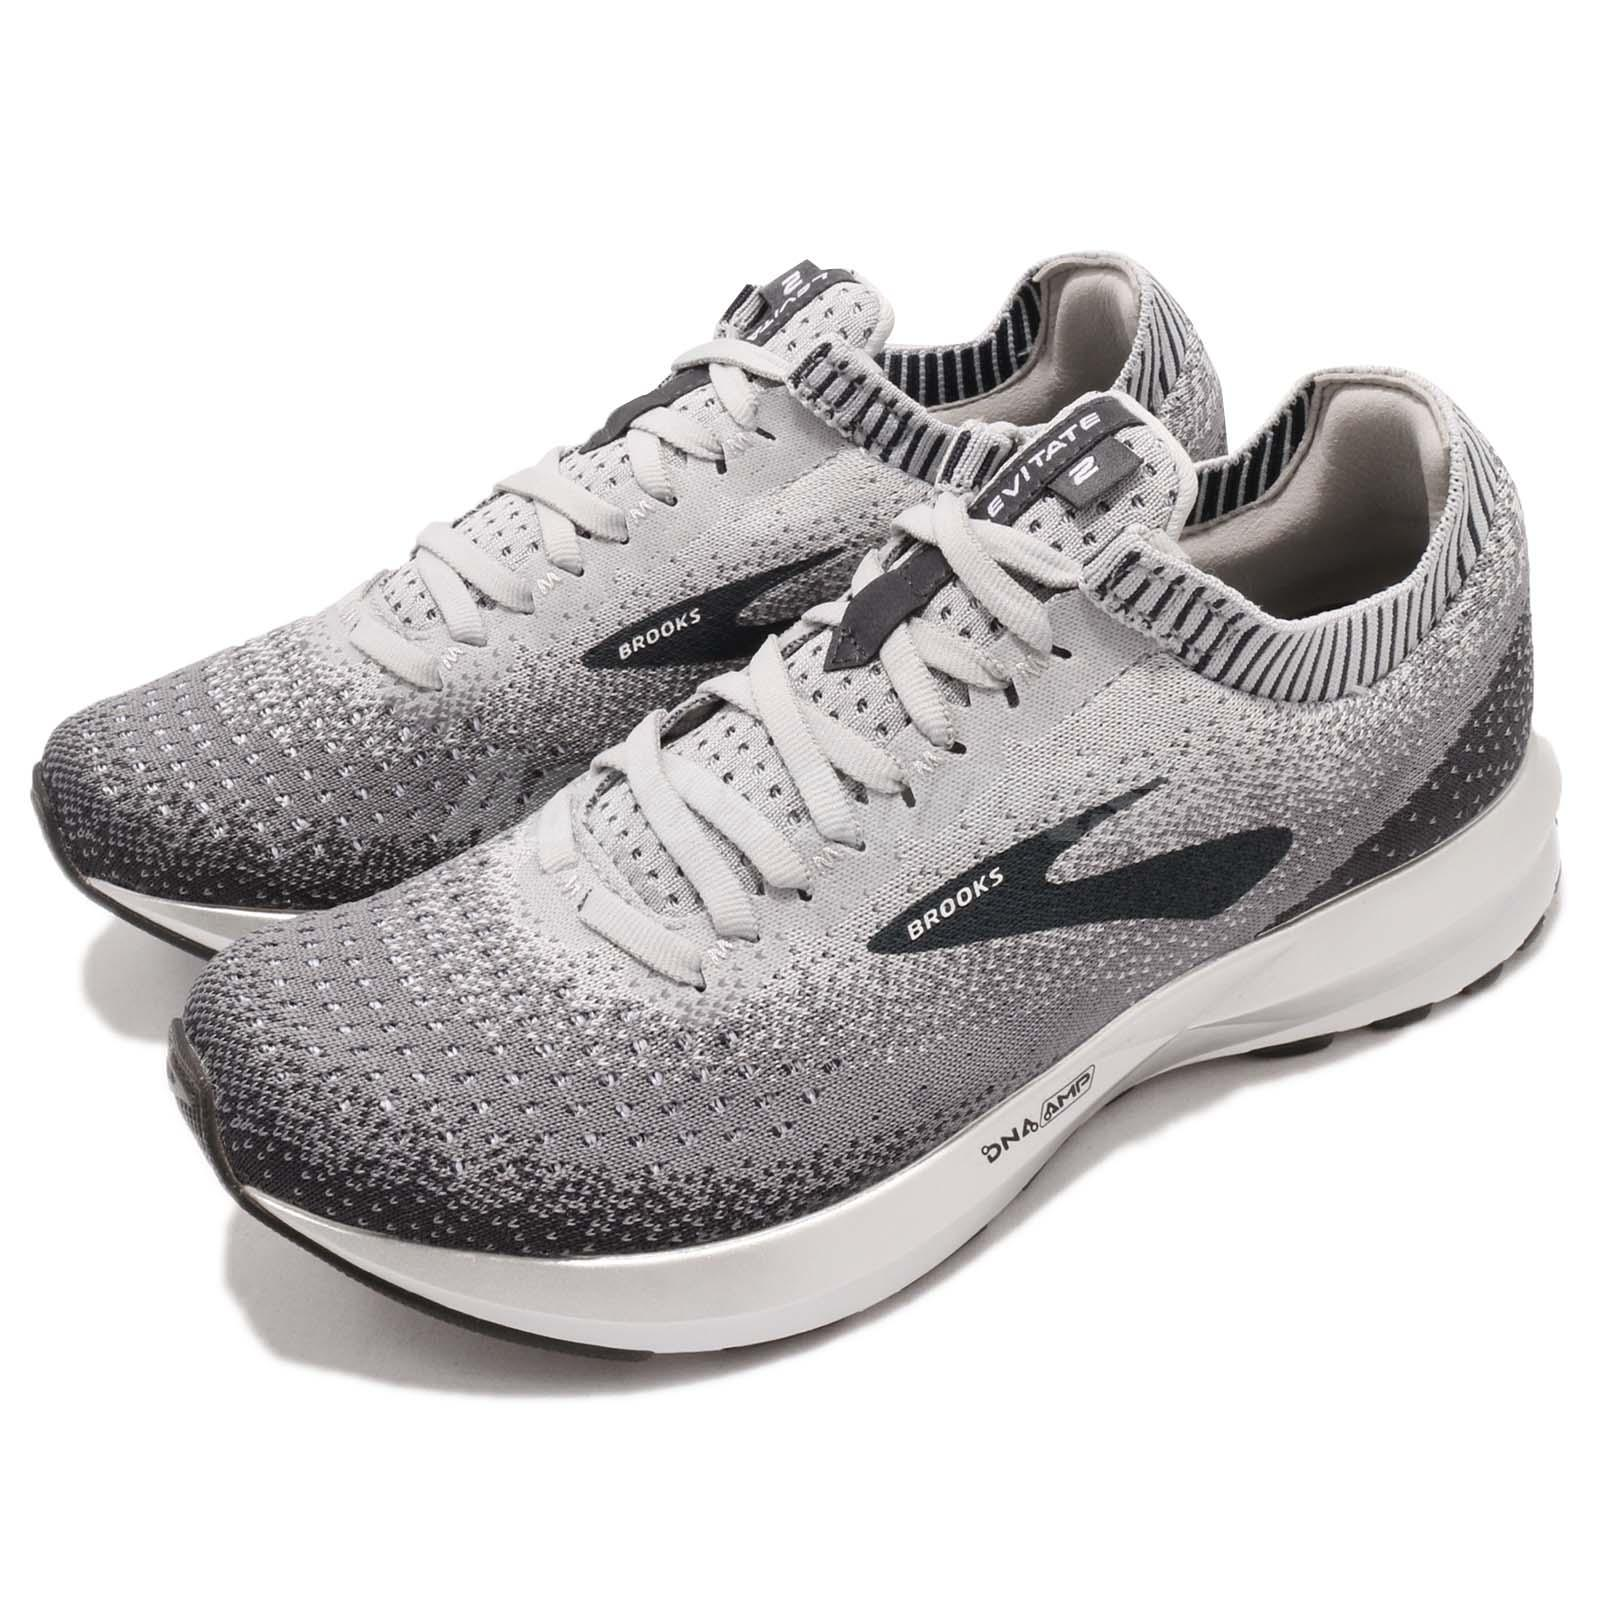 67c8d24835f Details about Brooks Levitate 2 Grey Black White Women Running Shoes  Sneakers 120279 1B